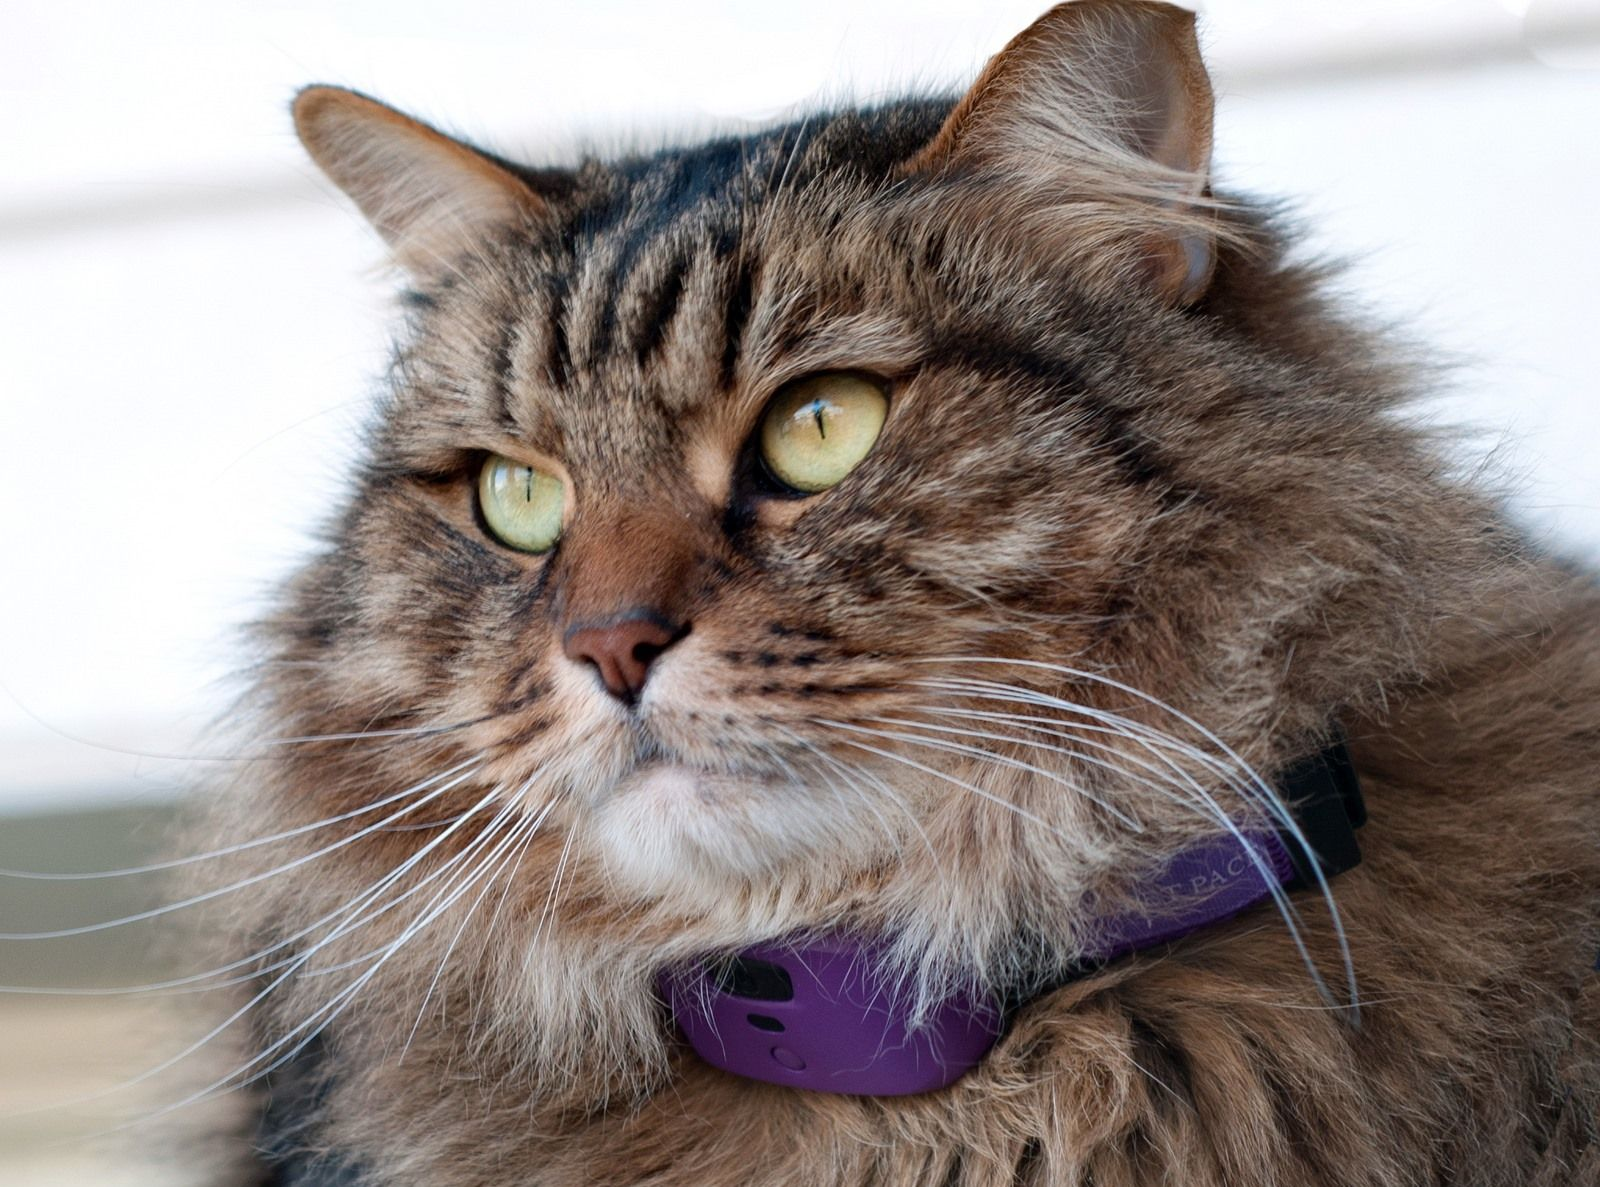 The PetPace collar monitors kitty's vitals and alerts to abnormalities. Photo: courtesy